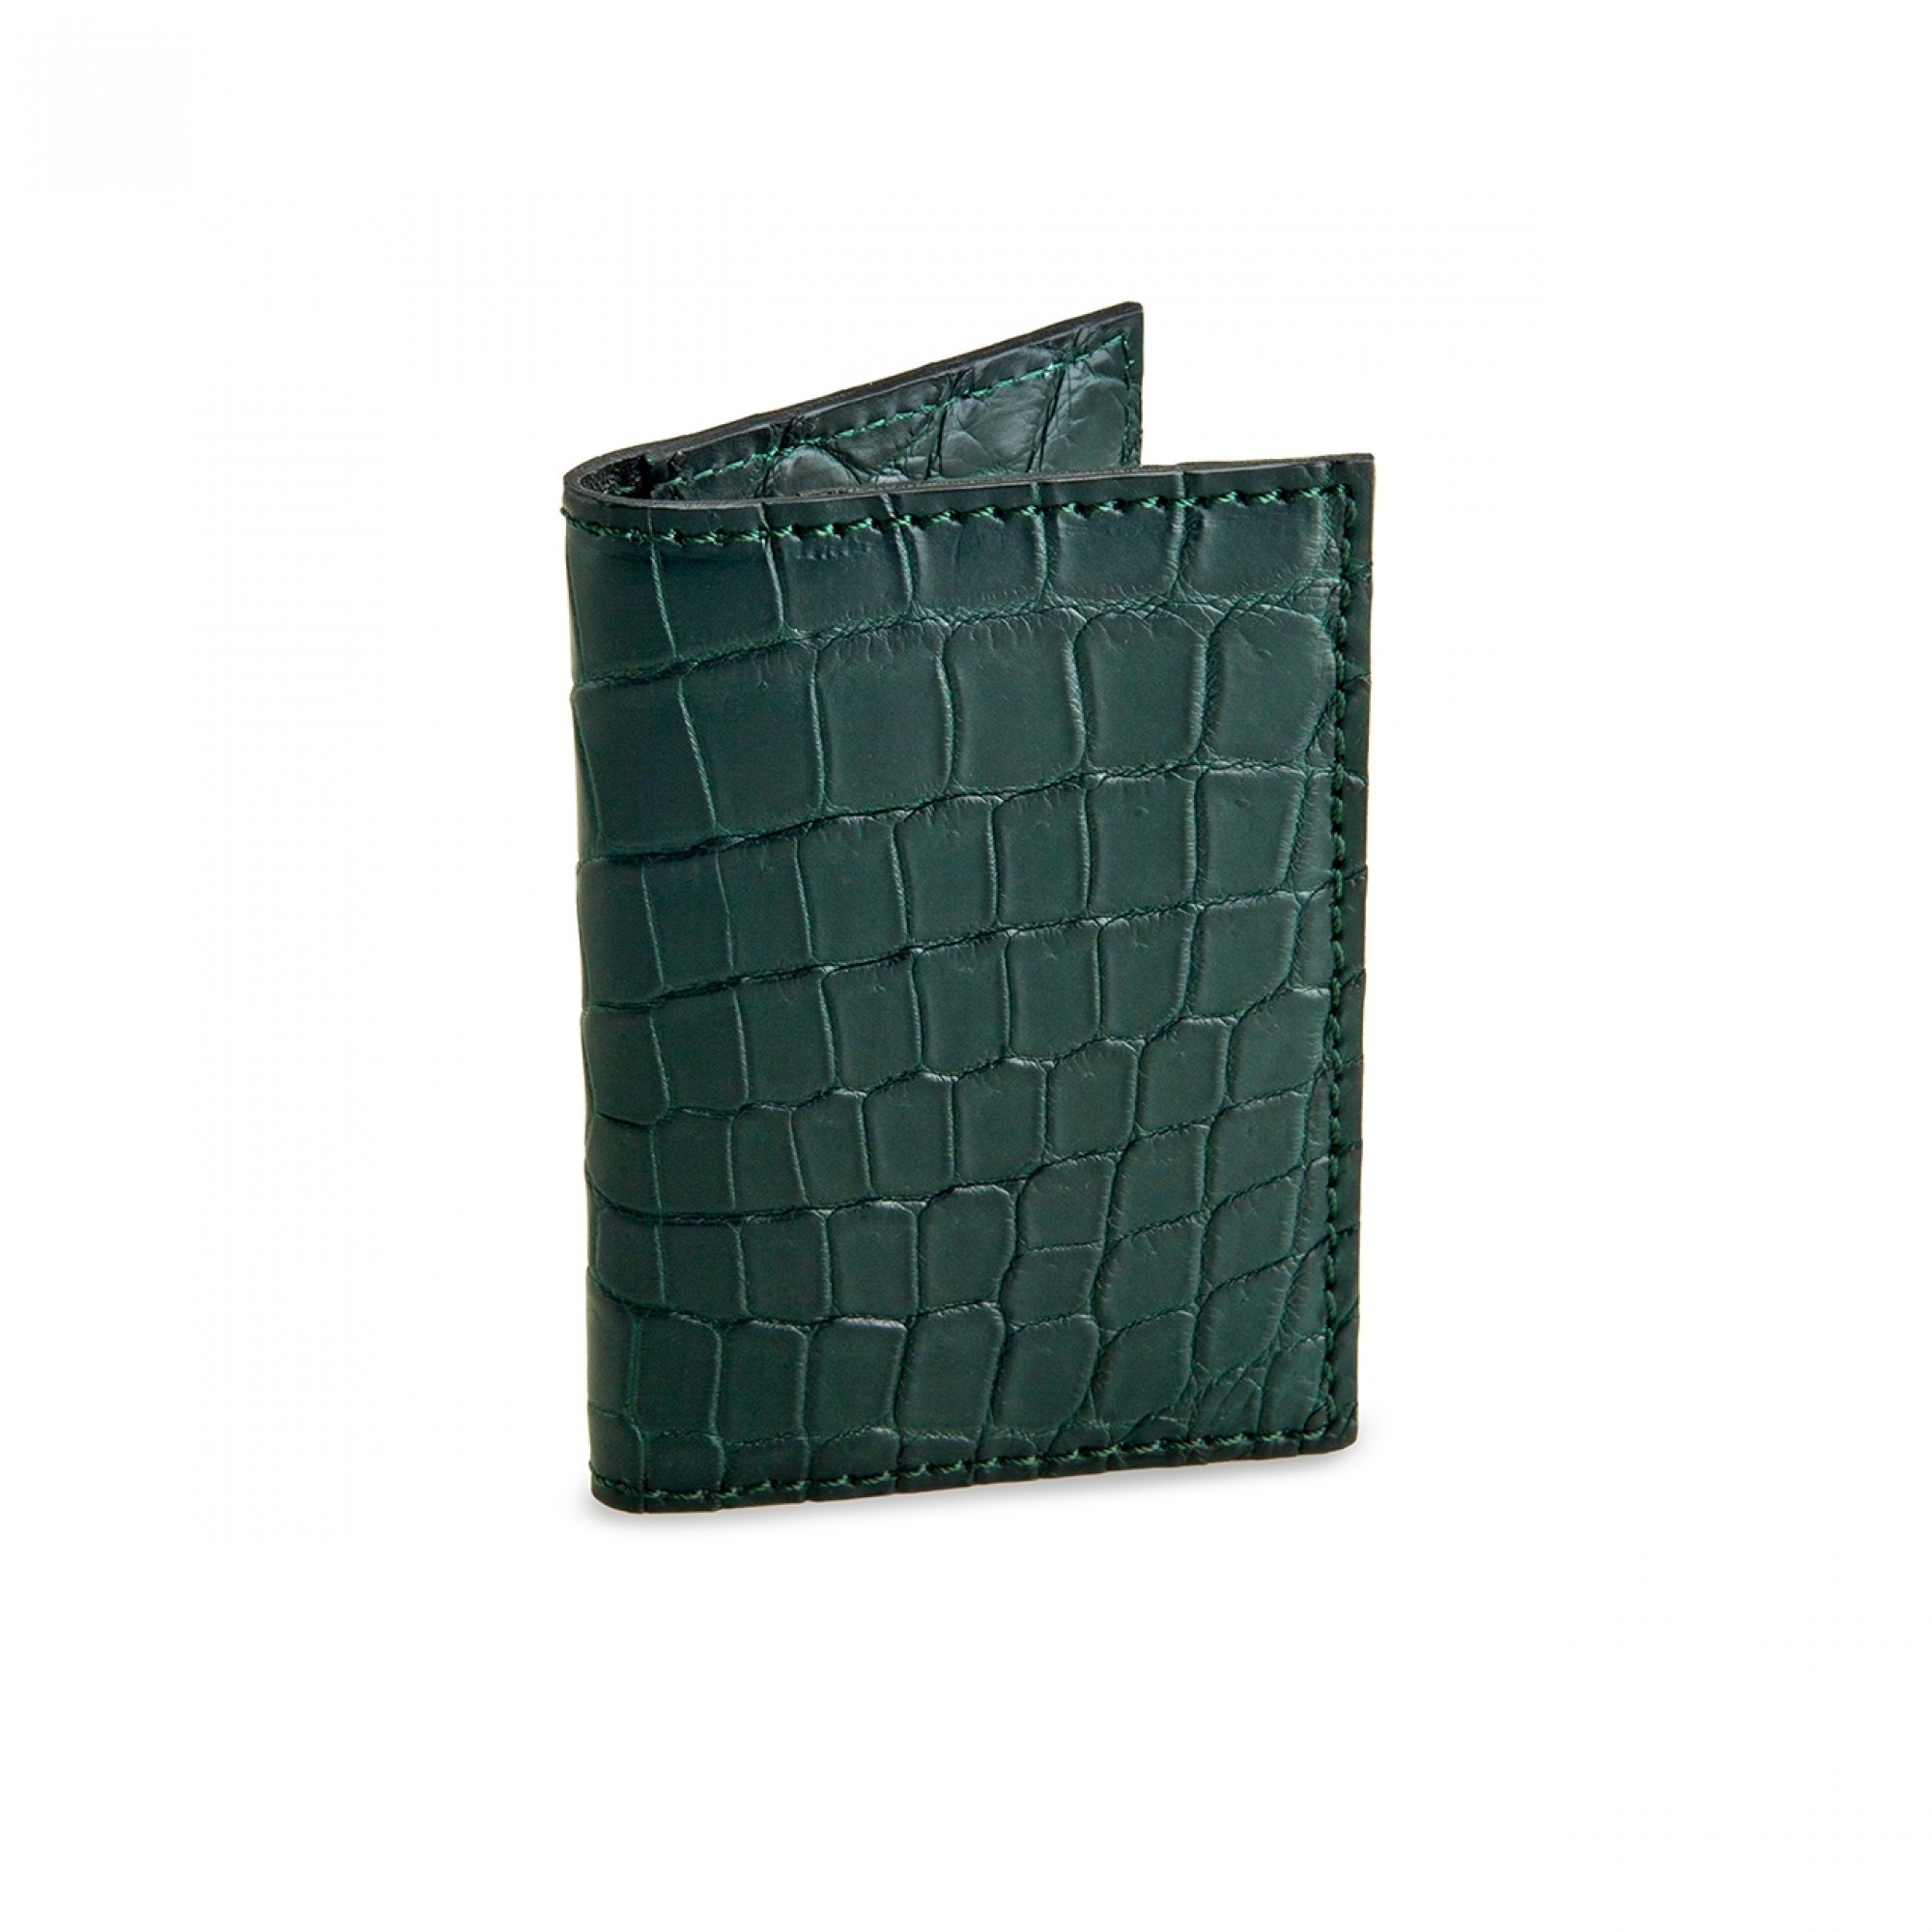 Crocodile document holder